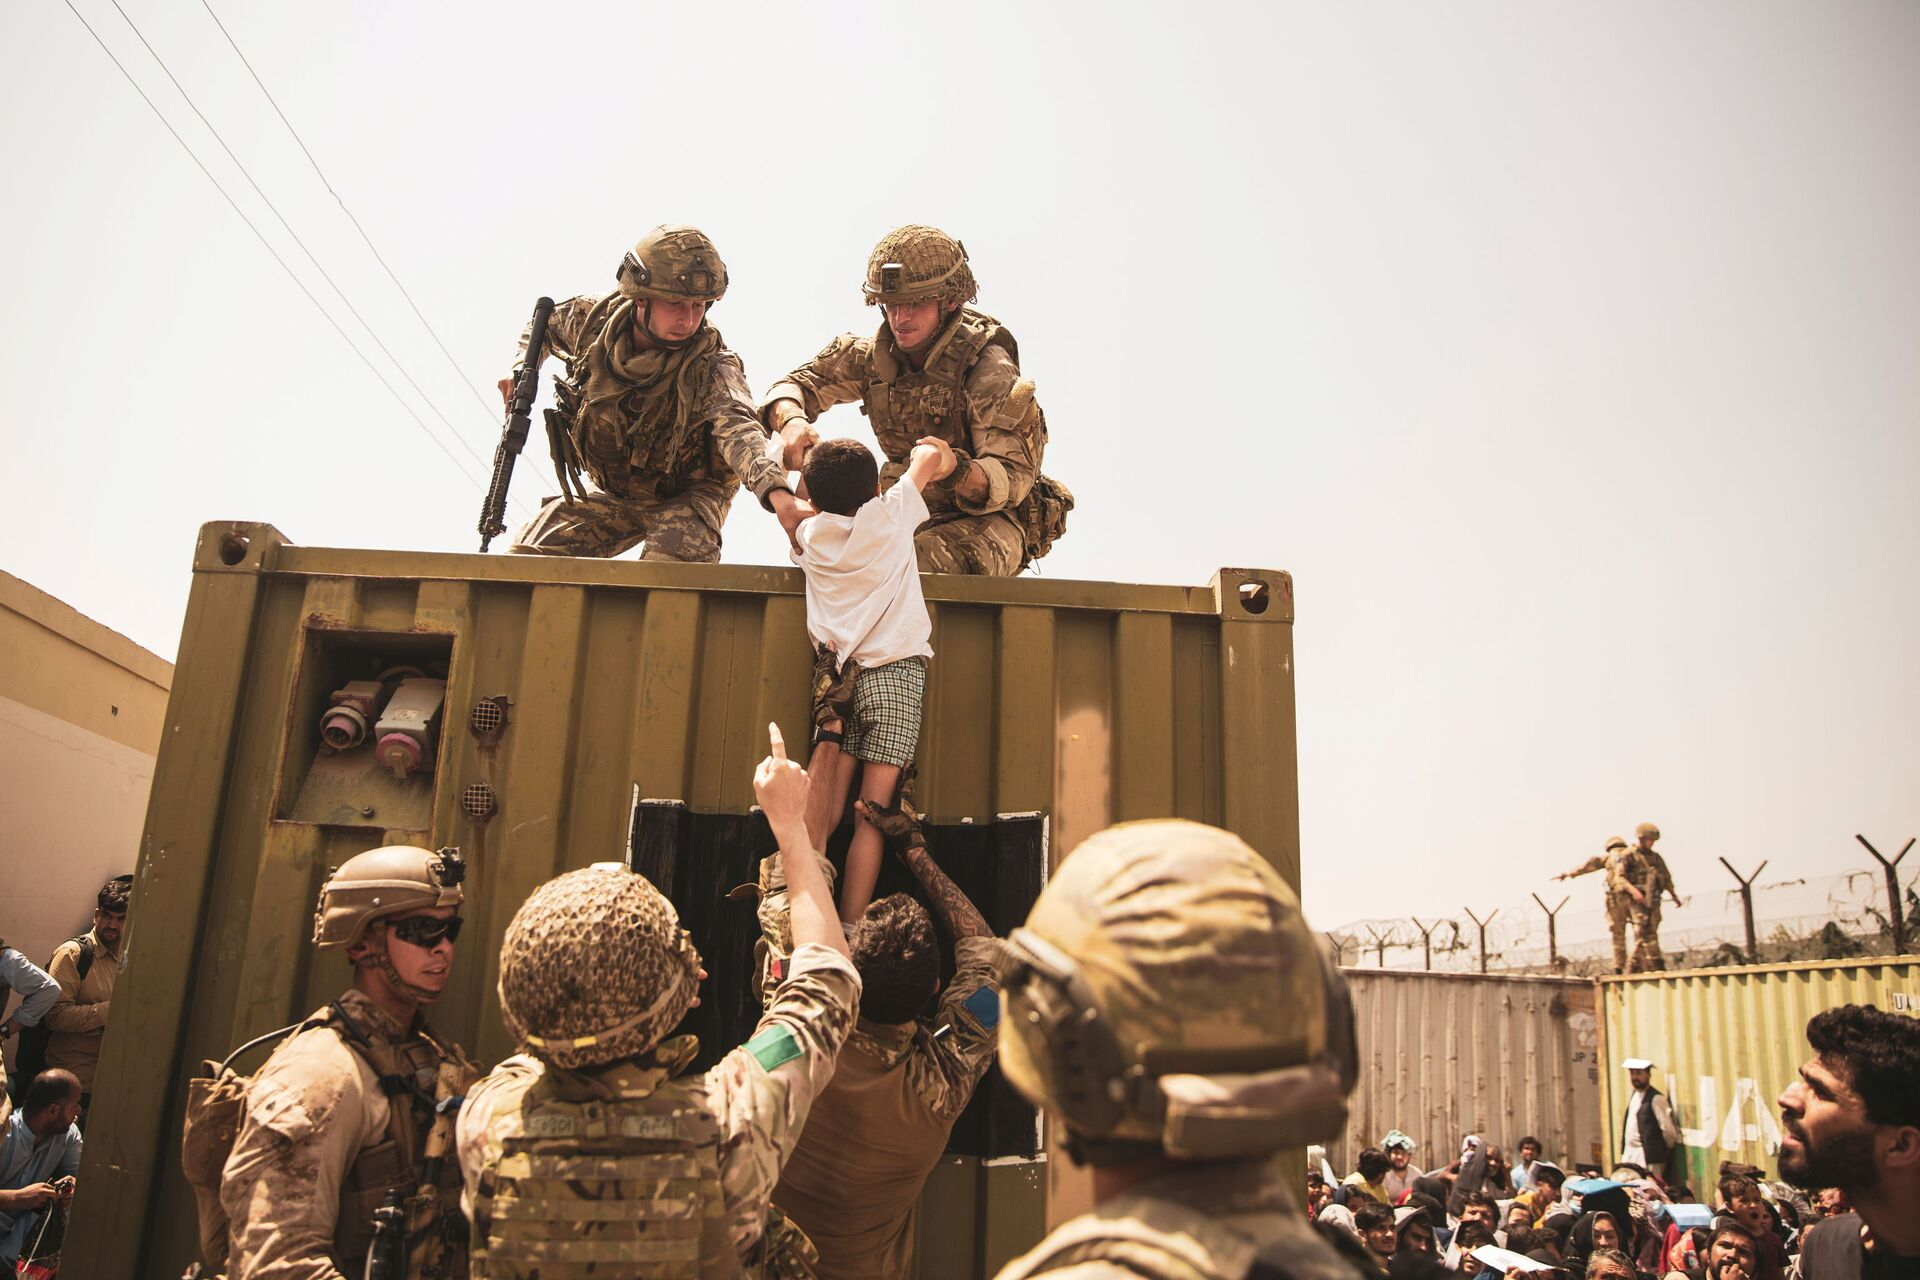 UK coalition forces, Turkish coalition forces, and U.S. Marines assist a child during an evacuation at Hamid Karzai International Airport, Kabul, Afghanistan, in this photo taken on August 20, 2021 - Sputnik International, 1920, 07.09.2021